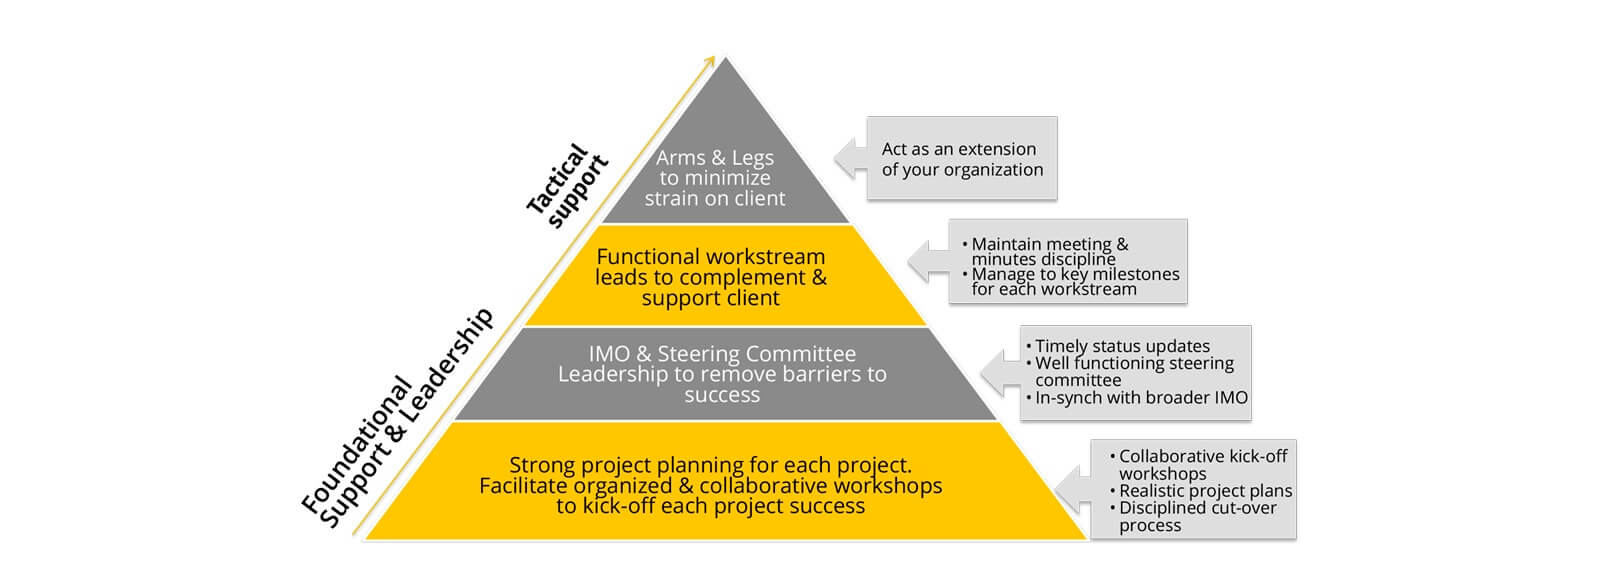 Pyramid infographic of the various levels of Auxis involvement during an M&A Integration Services